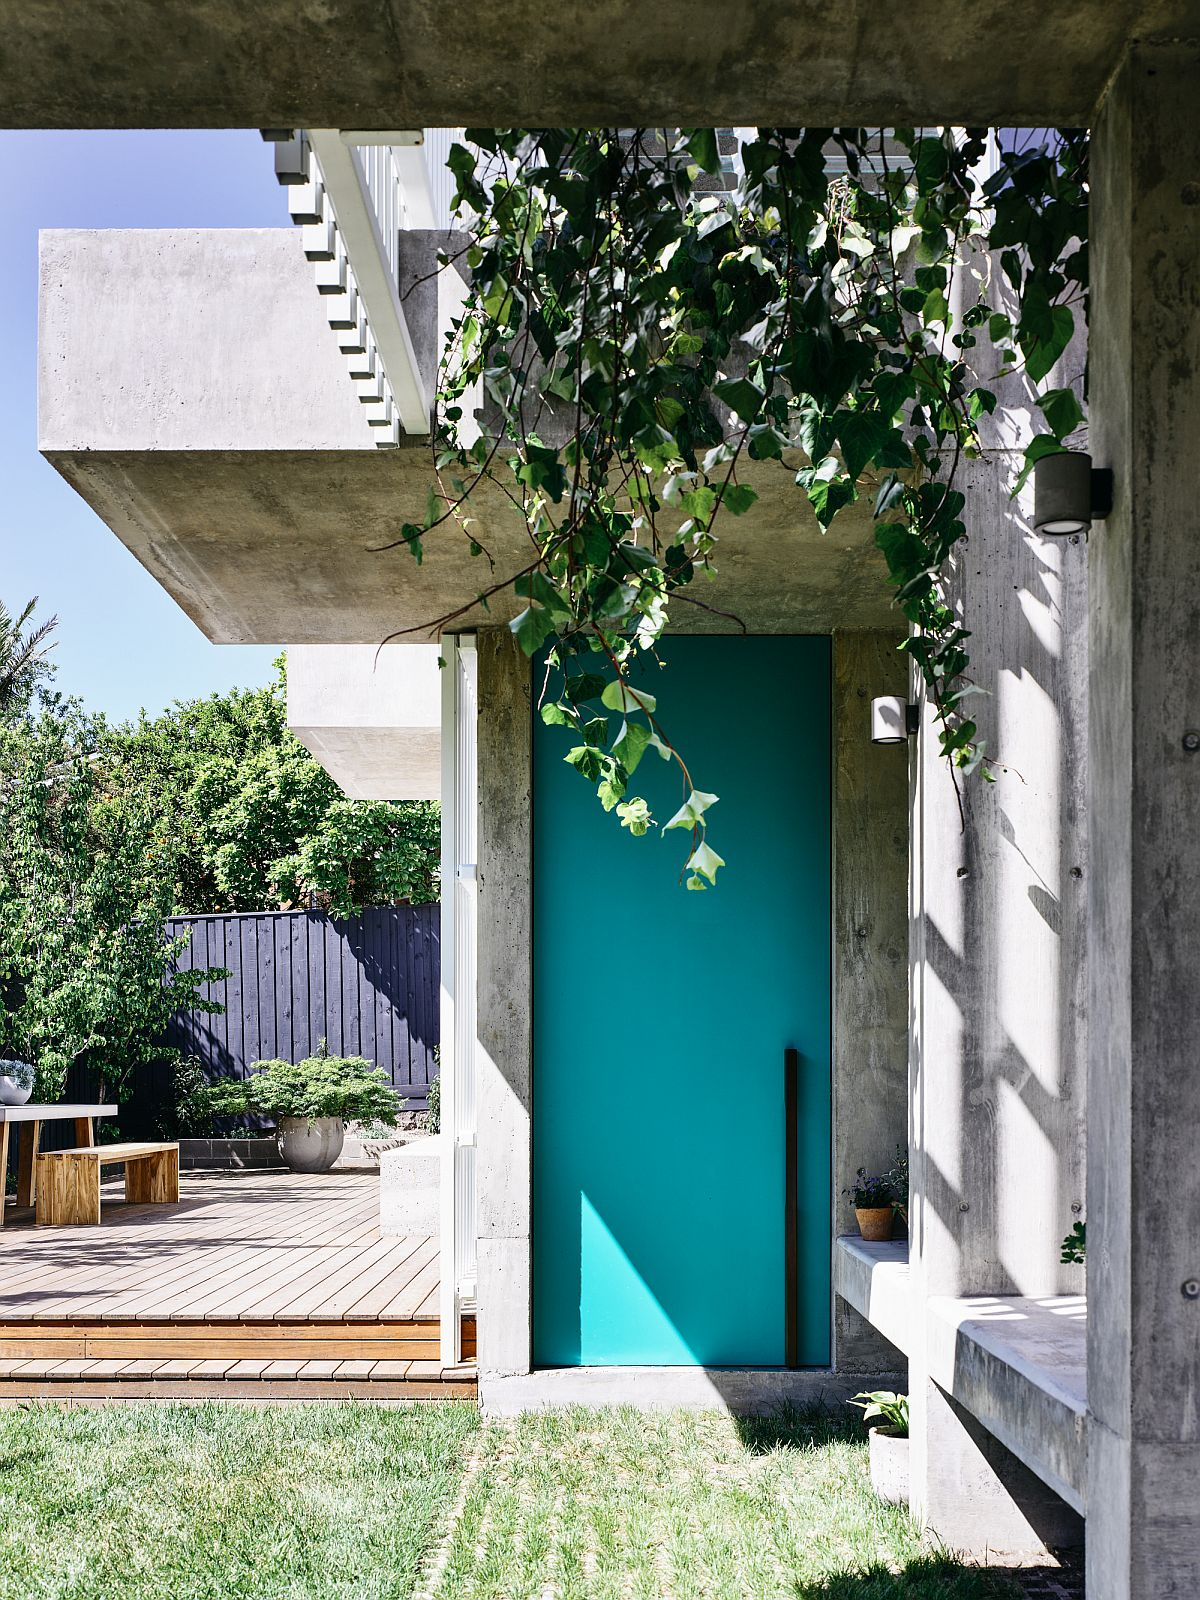 Hanging-plants-and-grasscrete-welcome-you-at-this-modern-Kew-Residence